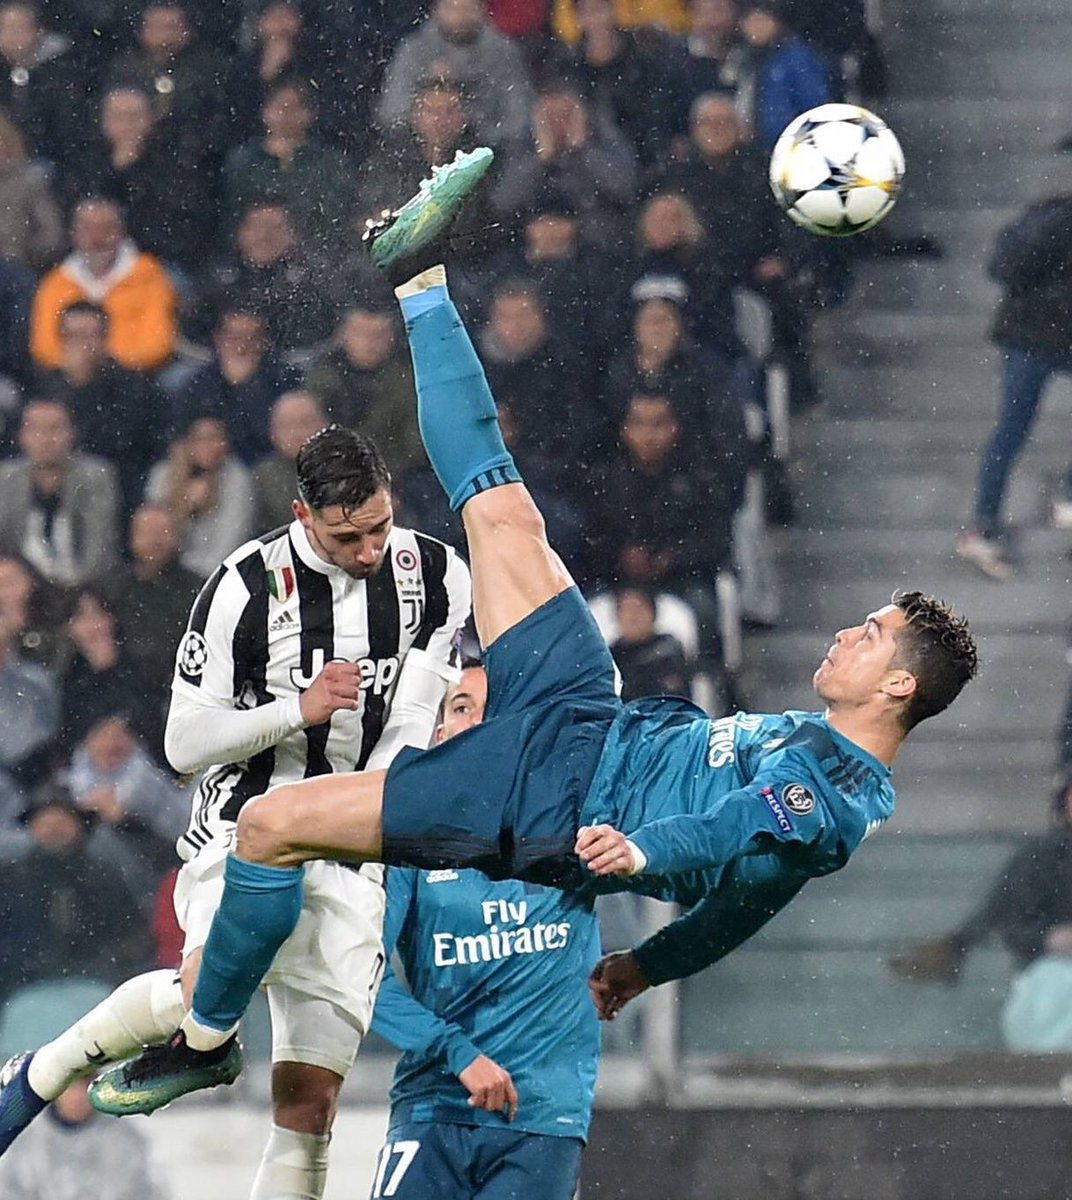 Sporf On Twitter Quote Zlatan Ibrahimovic On Cristiano Ronaldo S Bicycle Kick It Was A Nice Goal But He Should Try It From 40 Meters Https T Co Cdzcgvgvw7